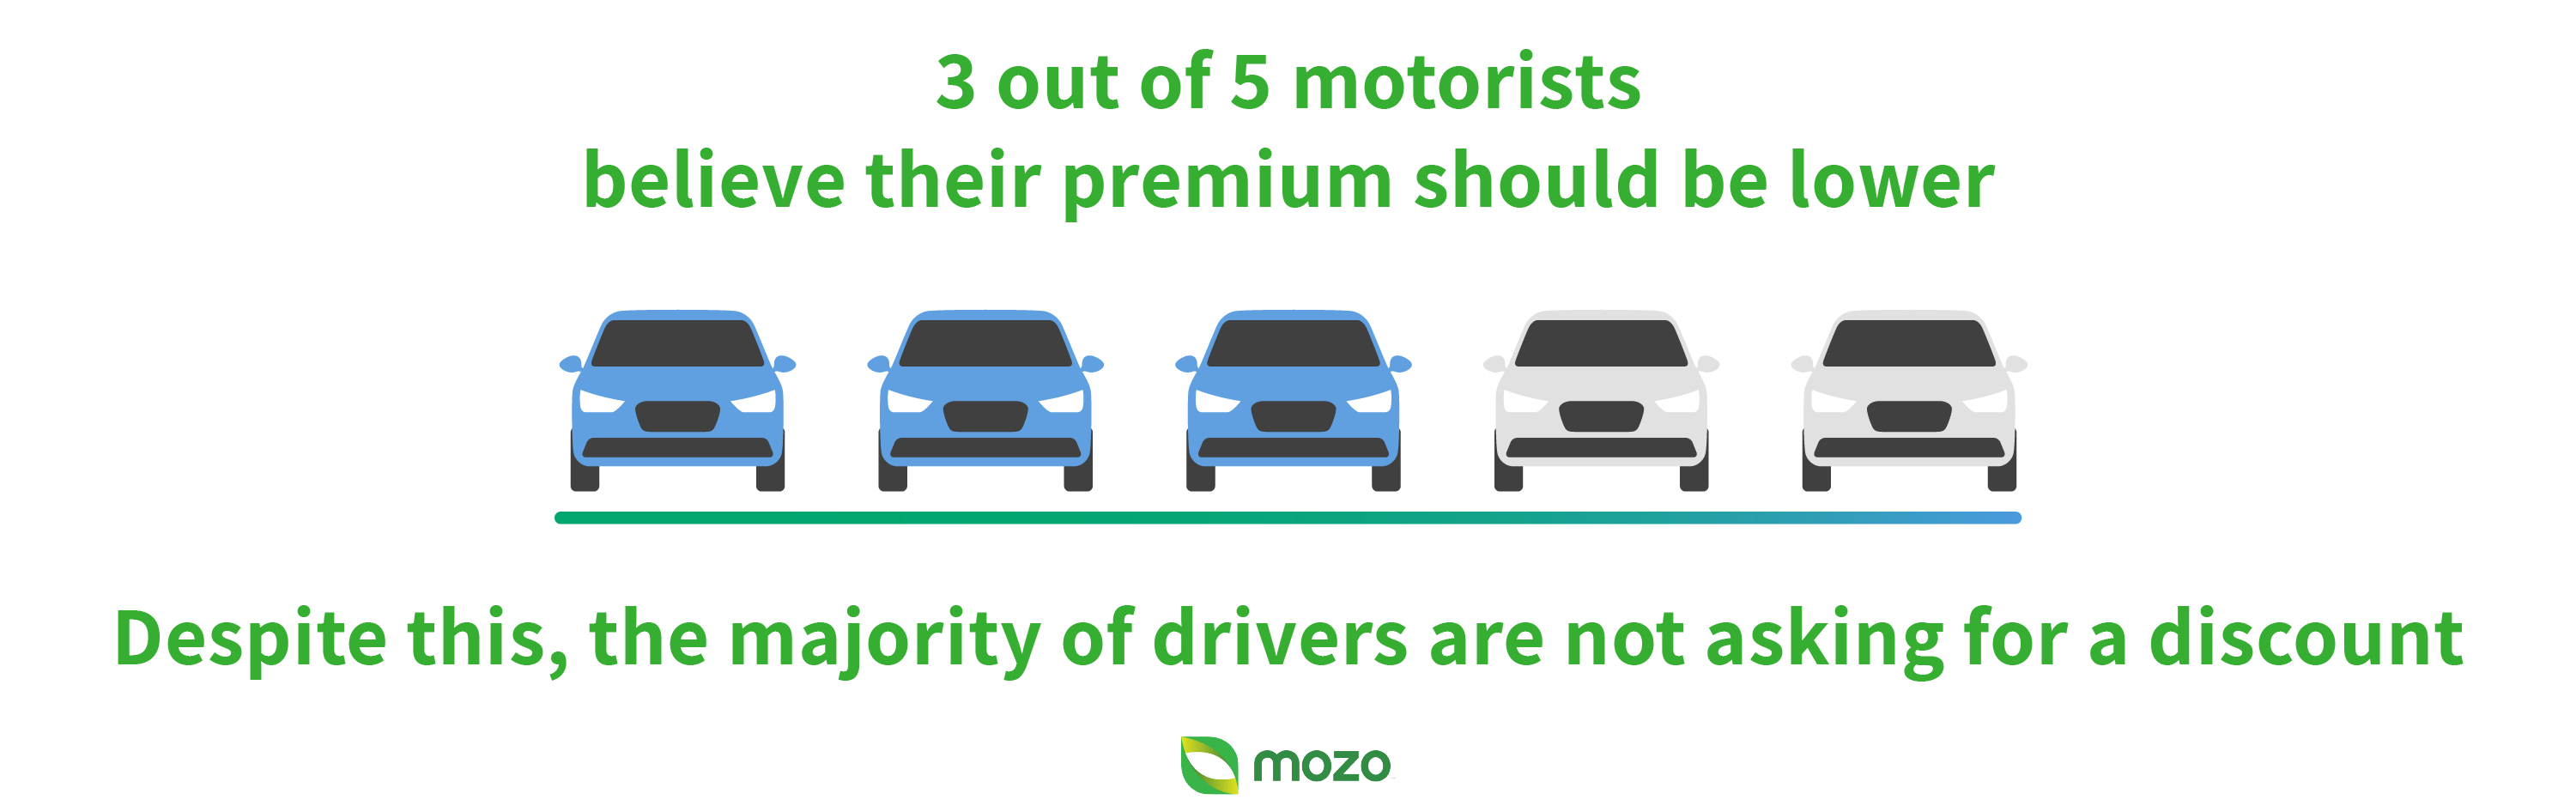 Graphic: 3 out of 5 motorists believe their premium should be lower.